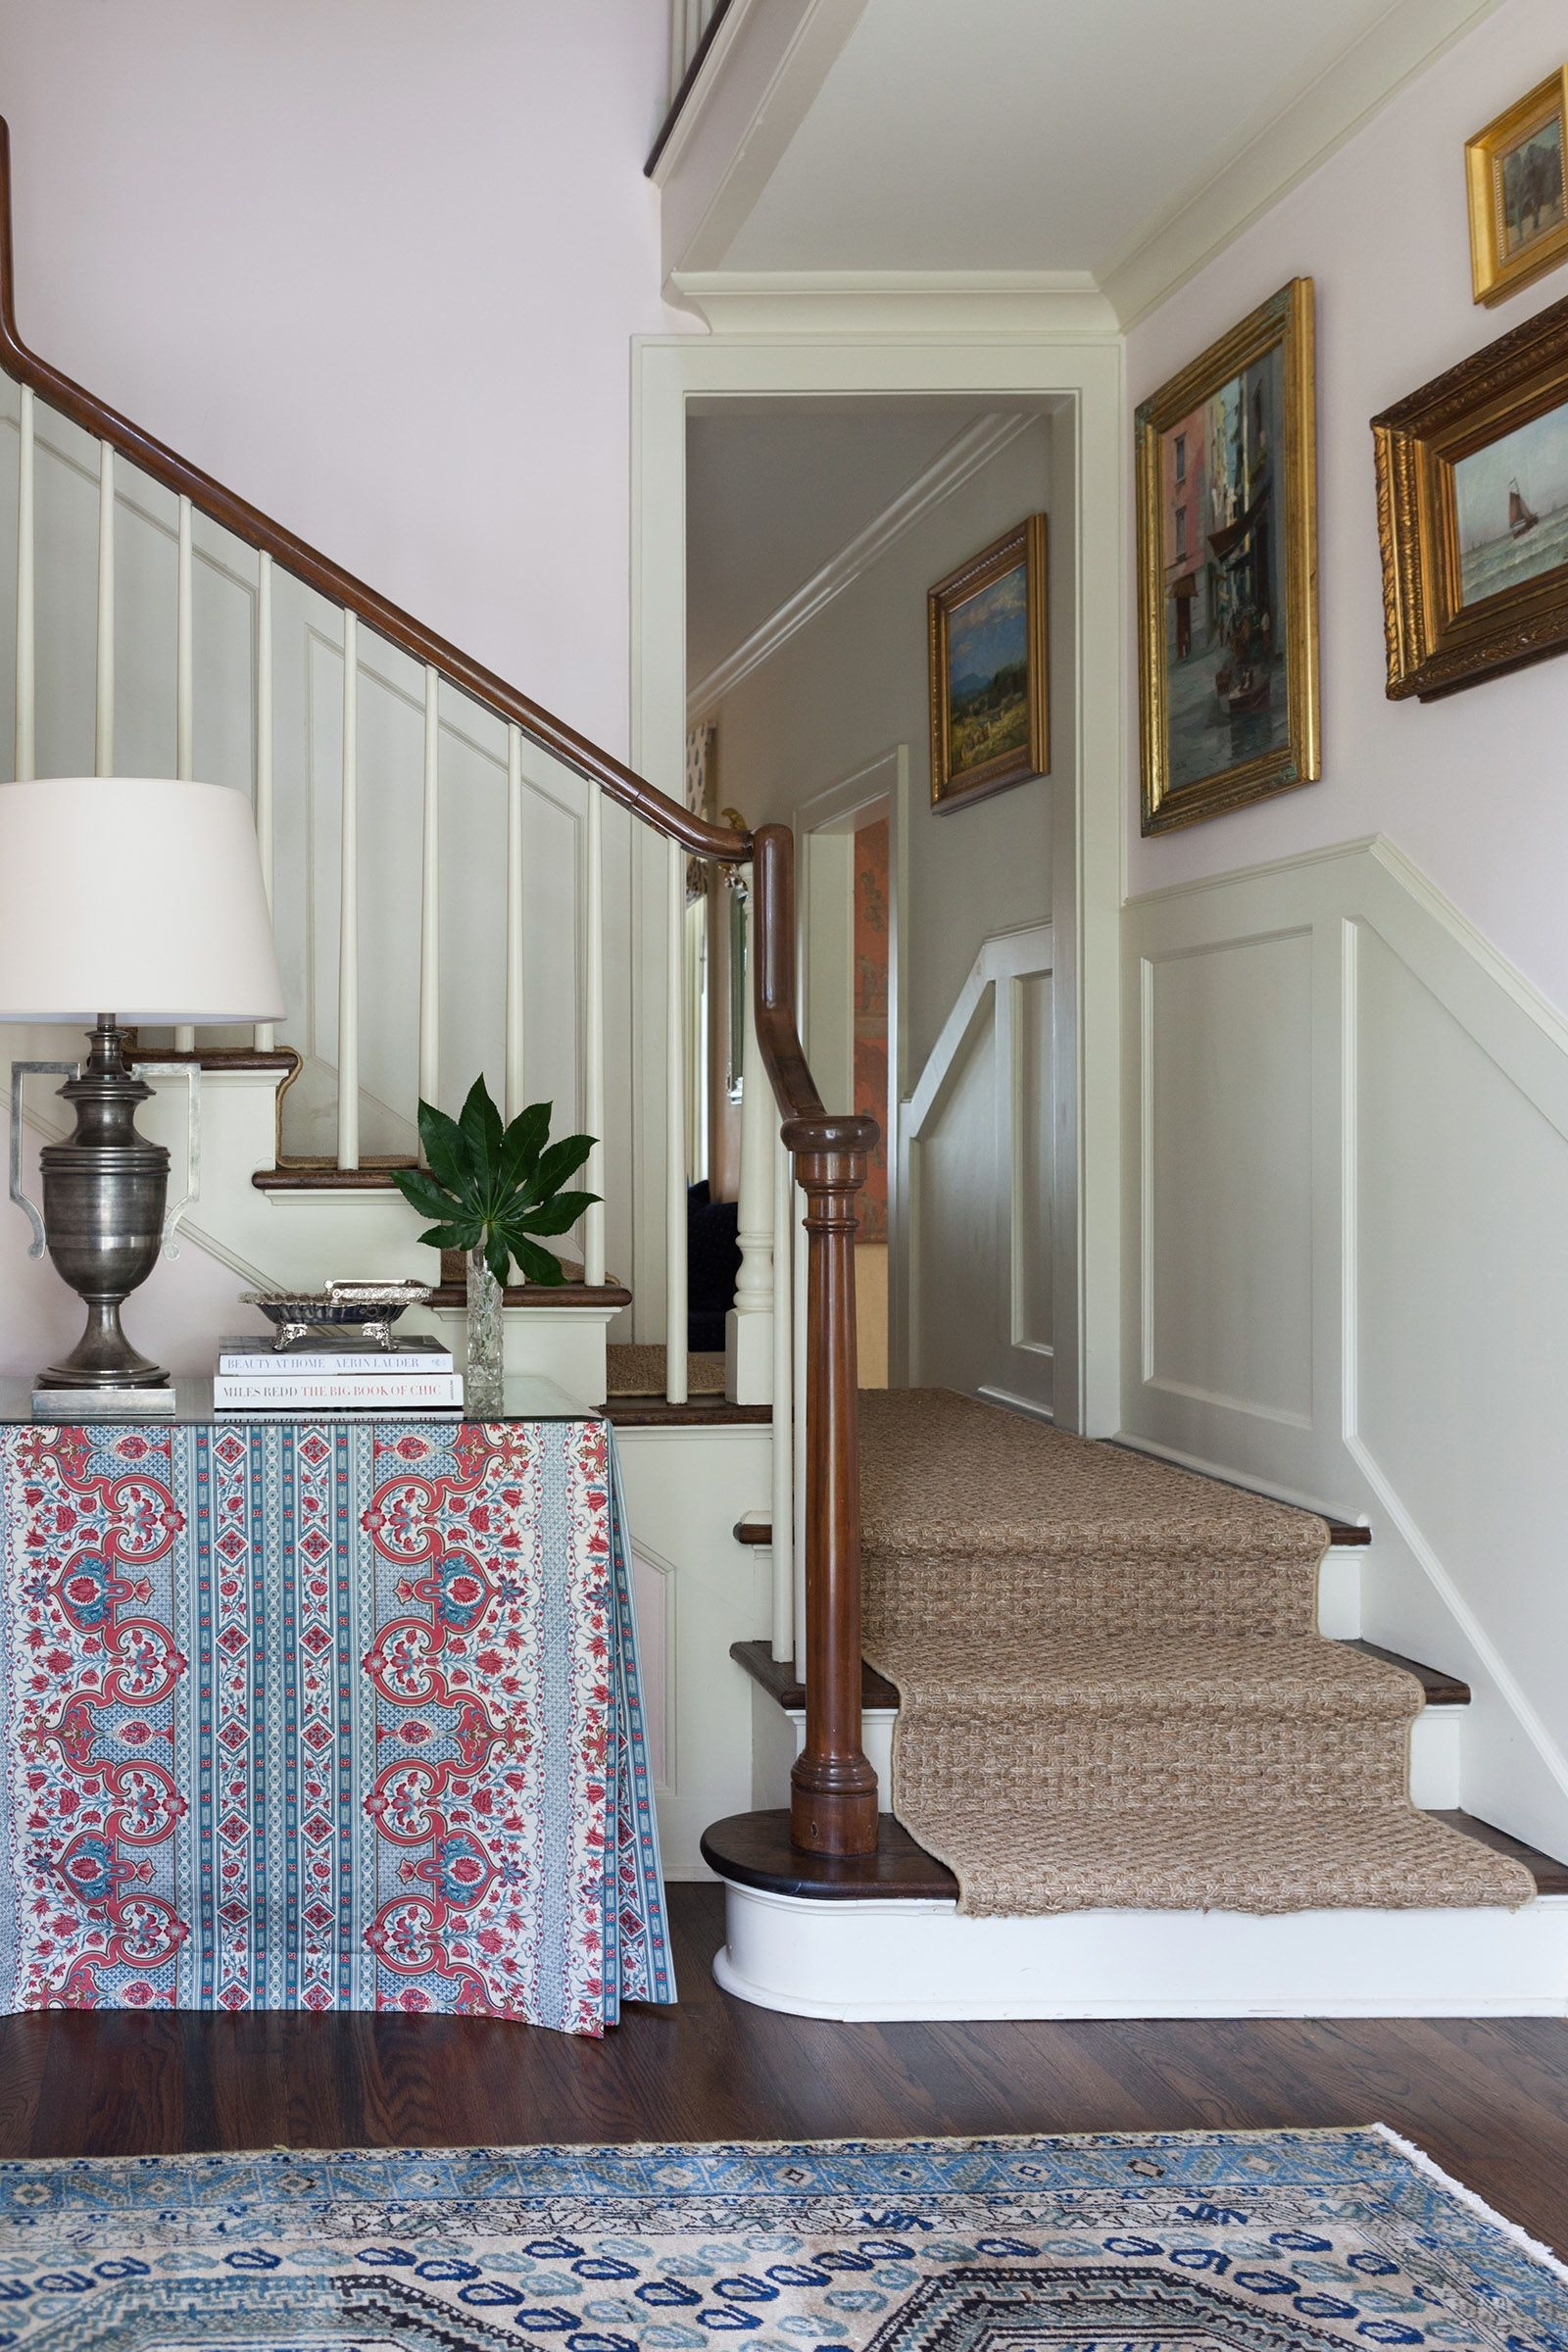 25 Stunning Carpeted Staircase Ideas Most Beautiful Staircase | Best Carpet For Bedrooms And Stairs | Berber Carpet | Patterned Carpet | Beige | Stair Runner | Hardwood